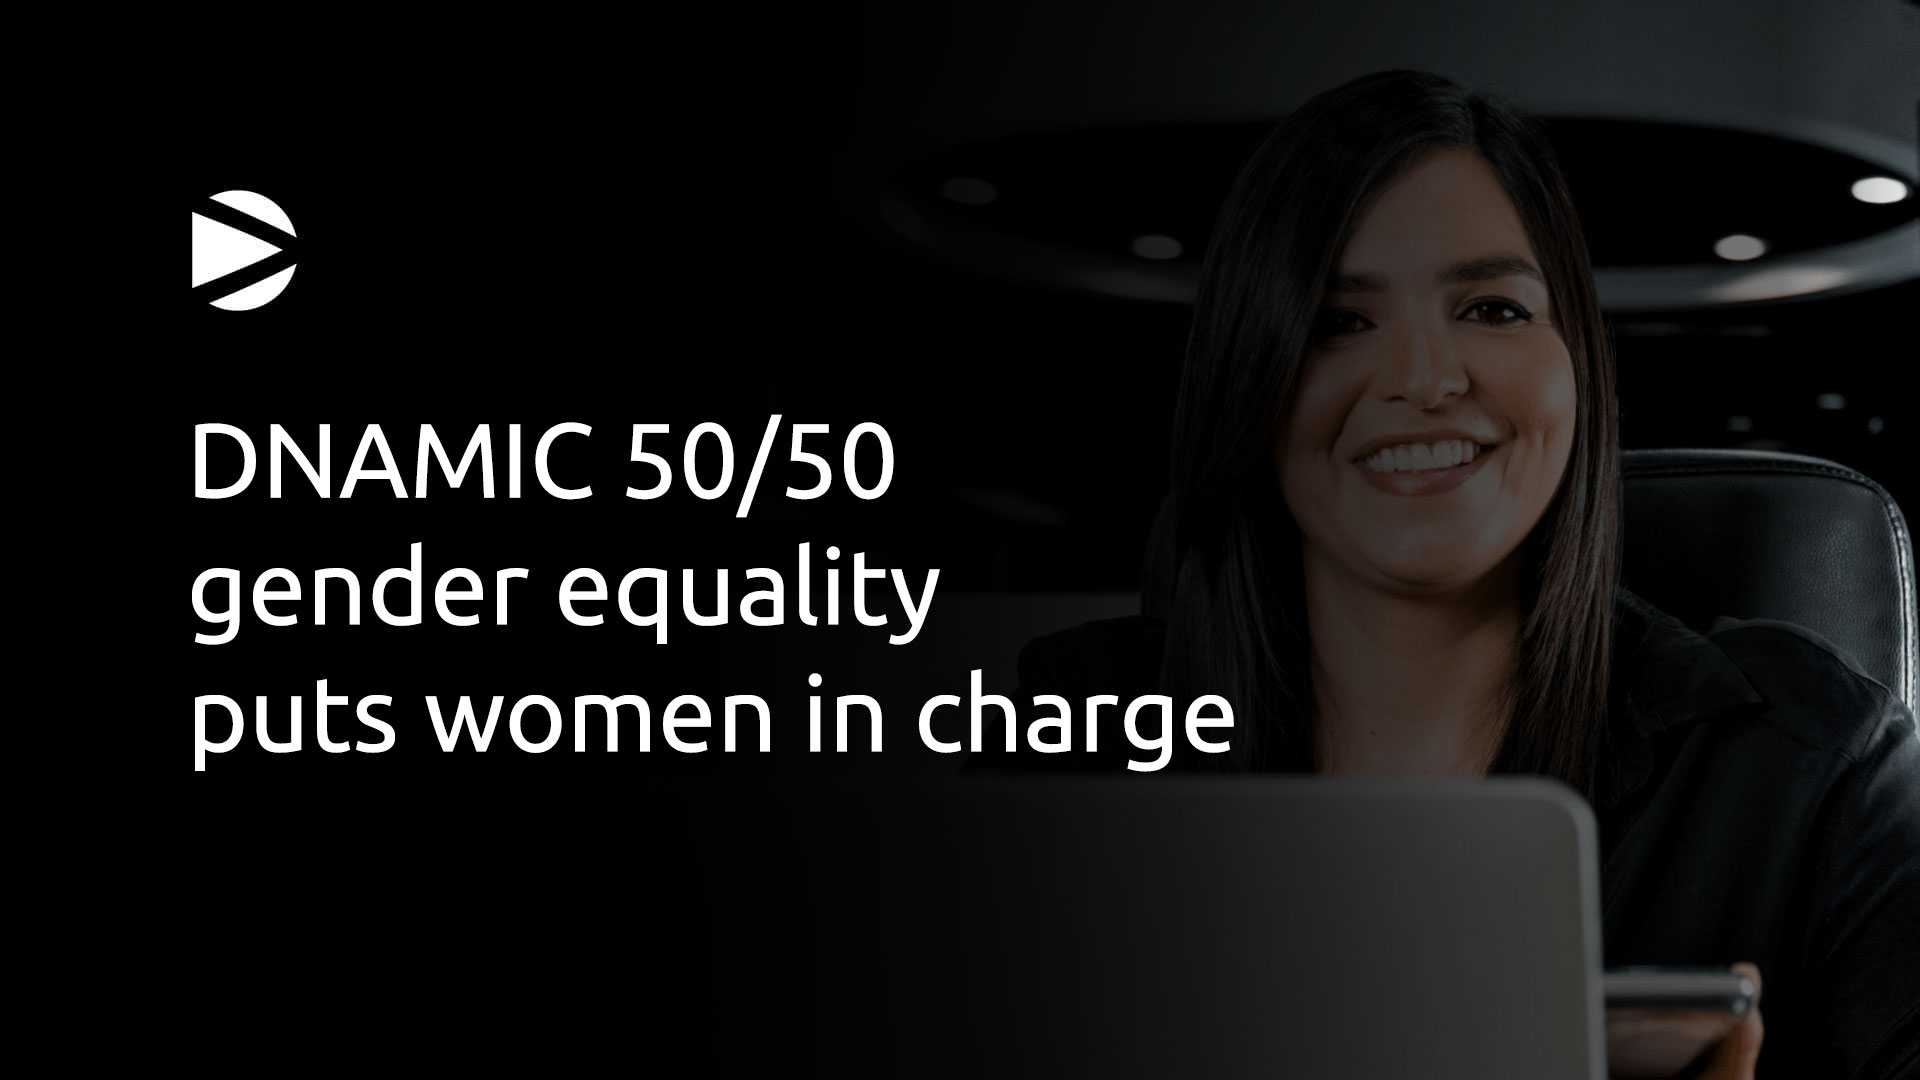 DNAMIC - Women Equality